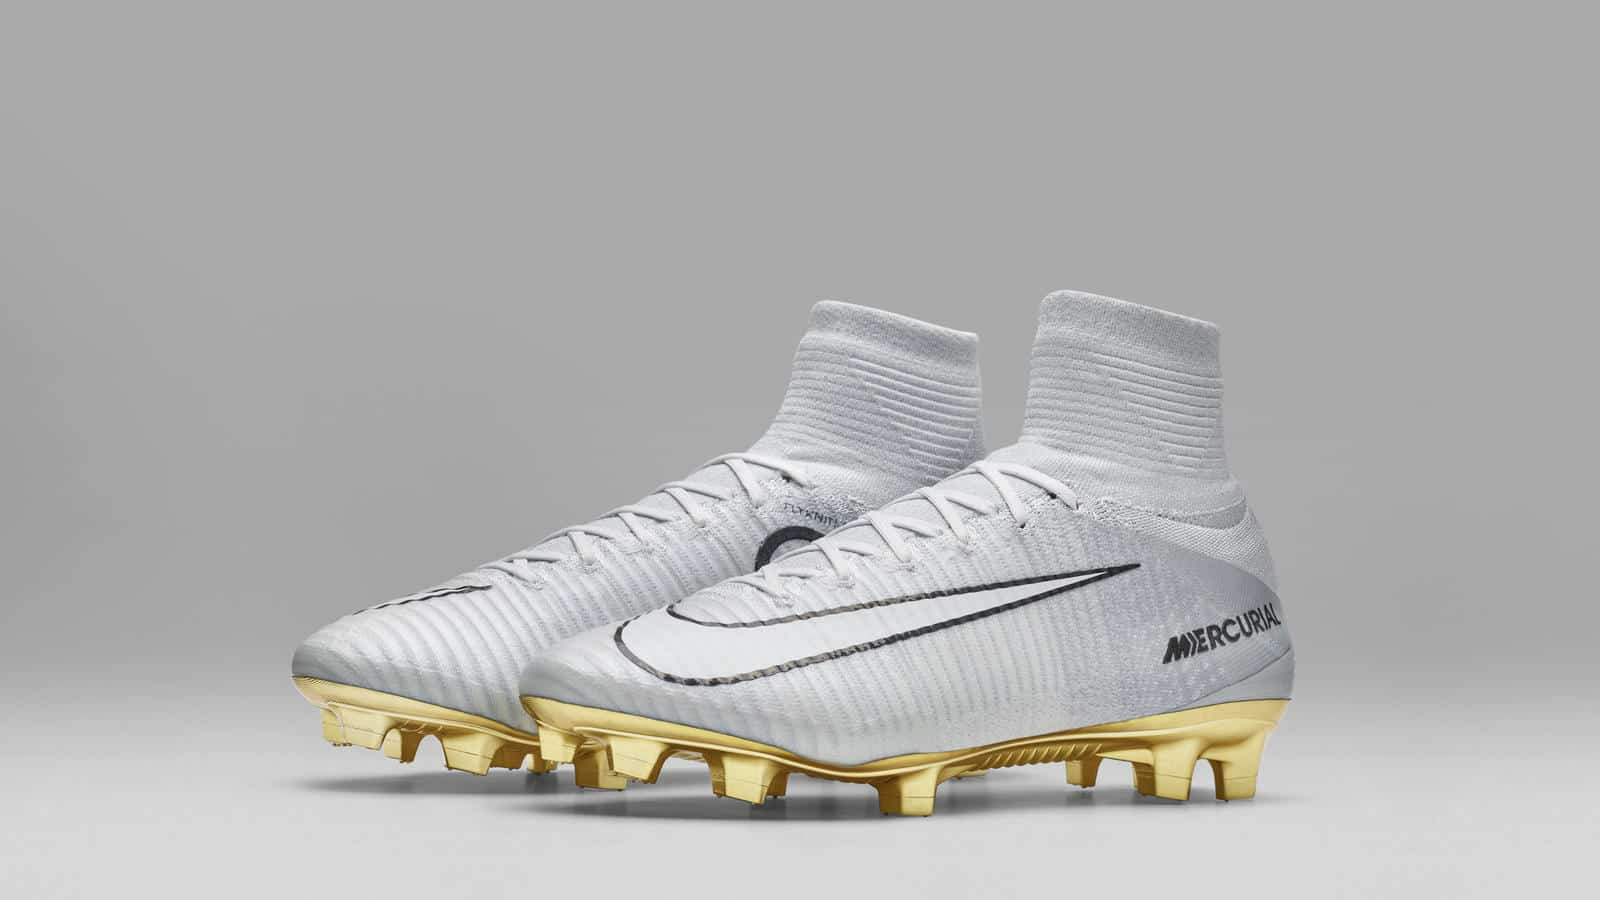 chaussure-foot-nike-mercurial-superfly-cr7-ballon-or-2016-4